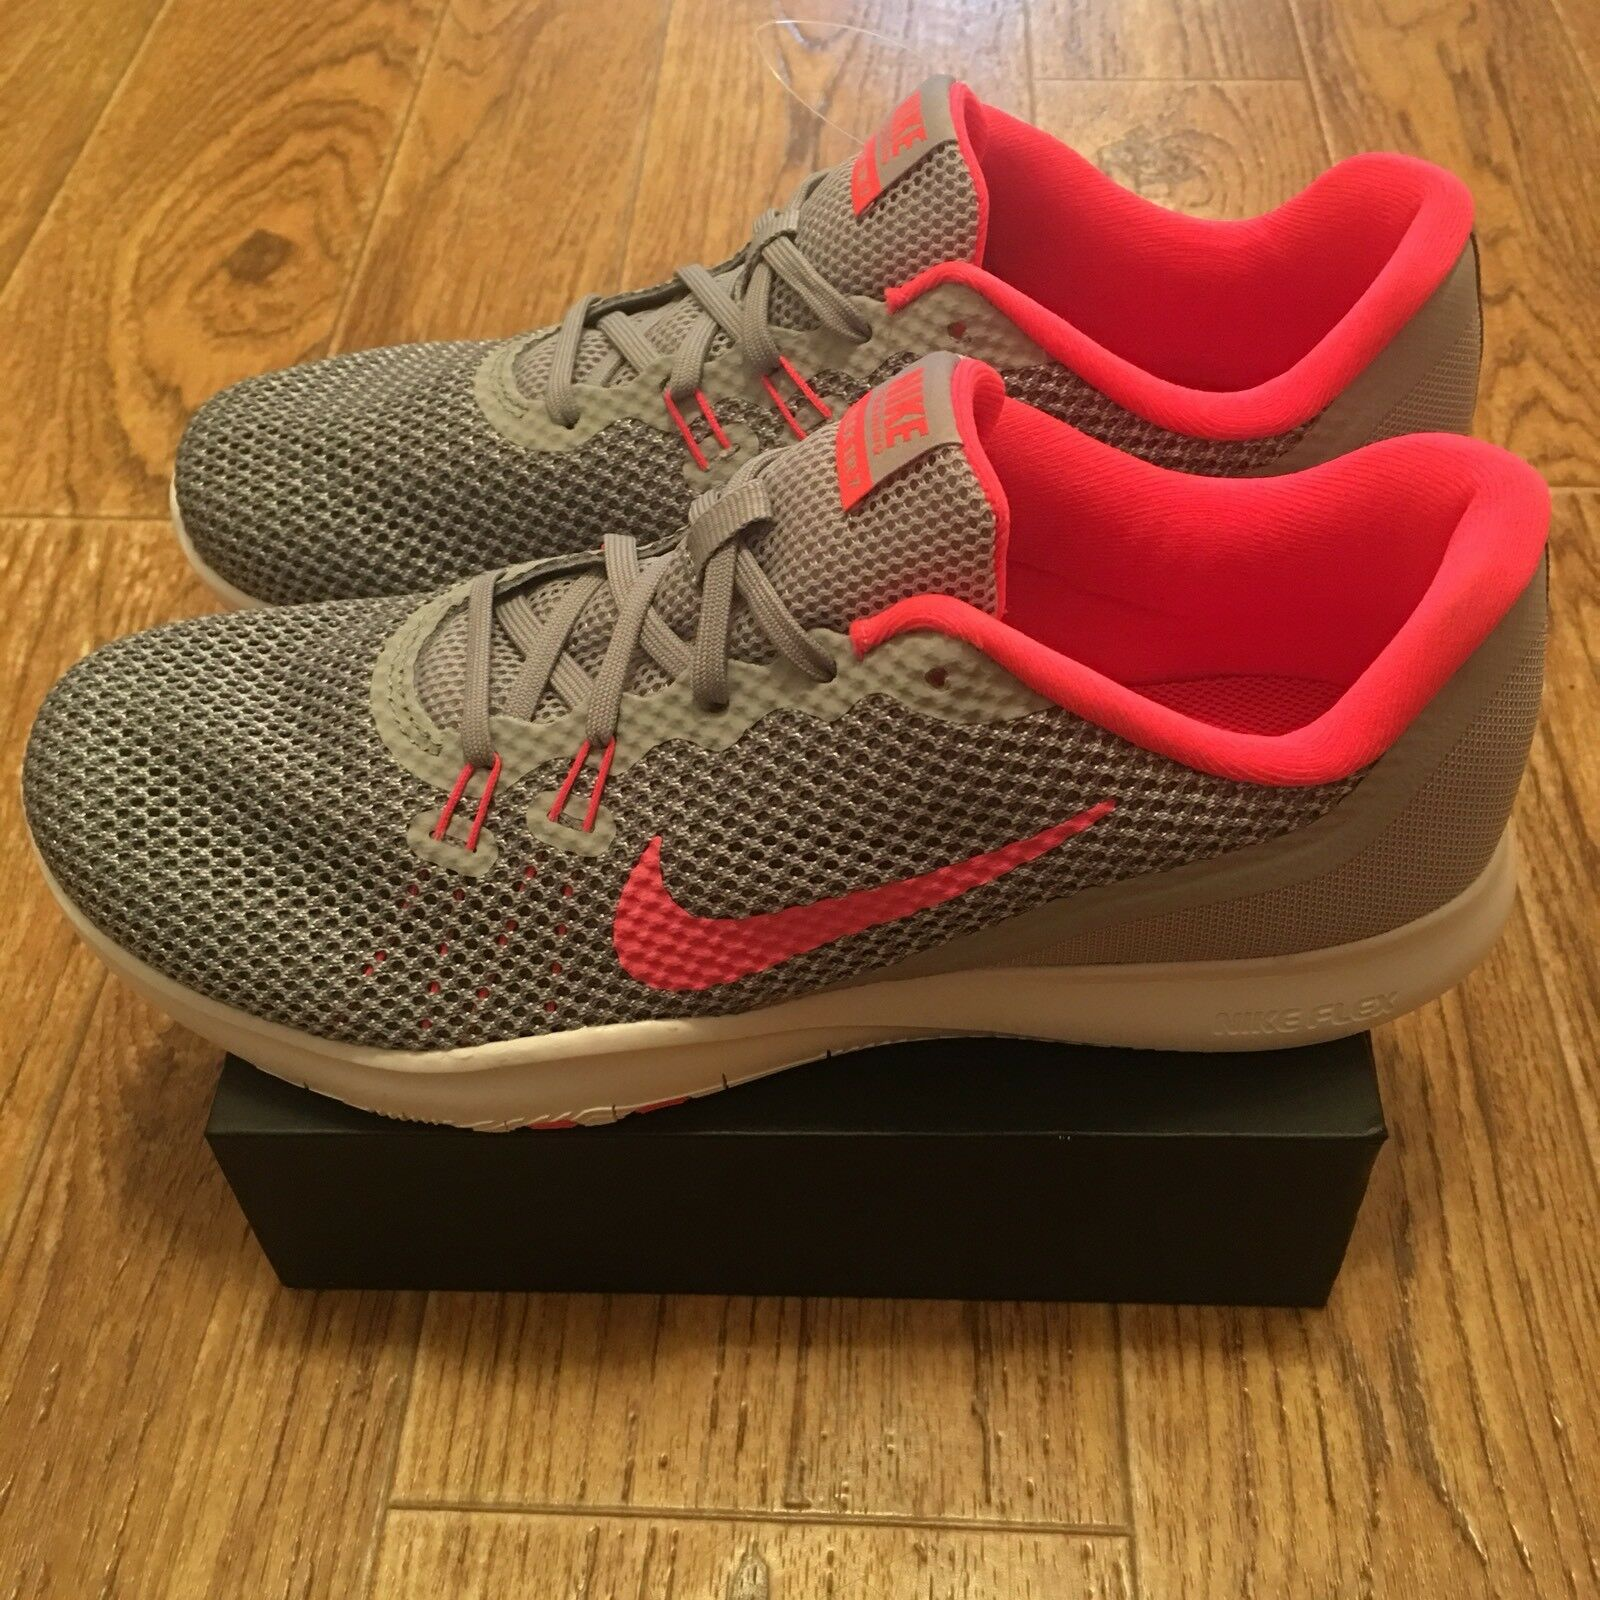 sports shoes 9d6c3 30f70 Nike W Flex Trainer 7  898479-006   898479-006   898479-006  Women Training  Shoes Wolf Grey Racer Pink NEW 51aae9